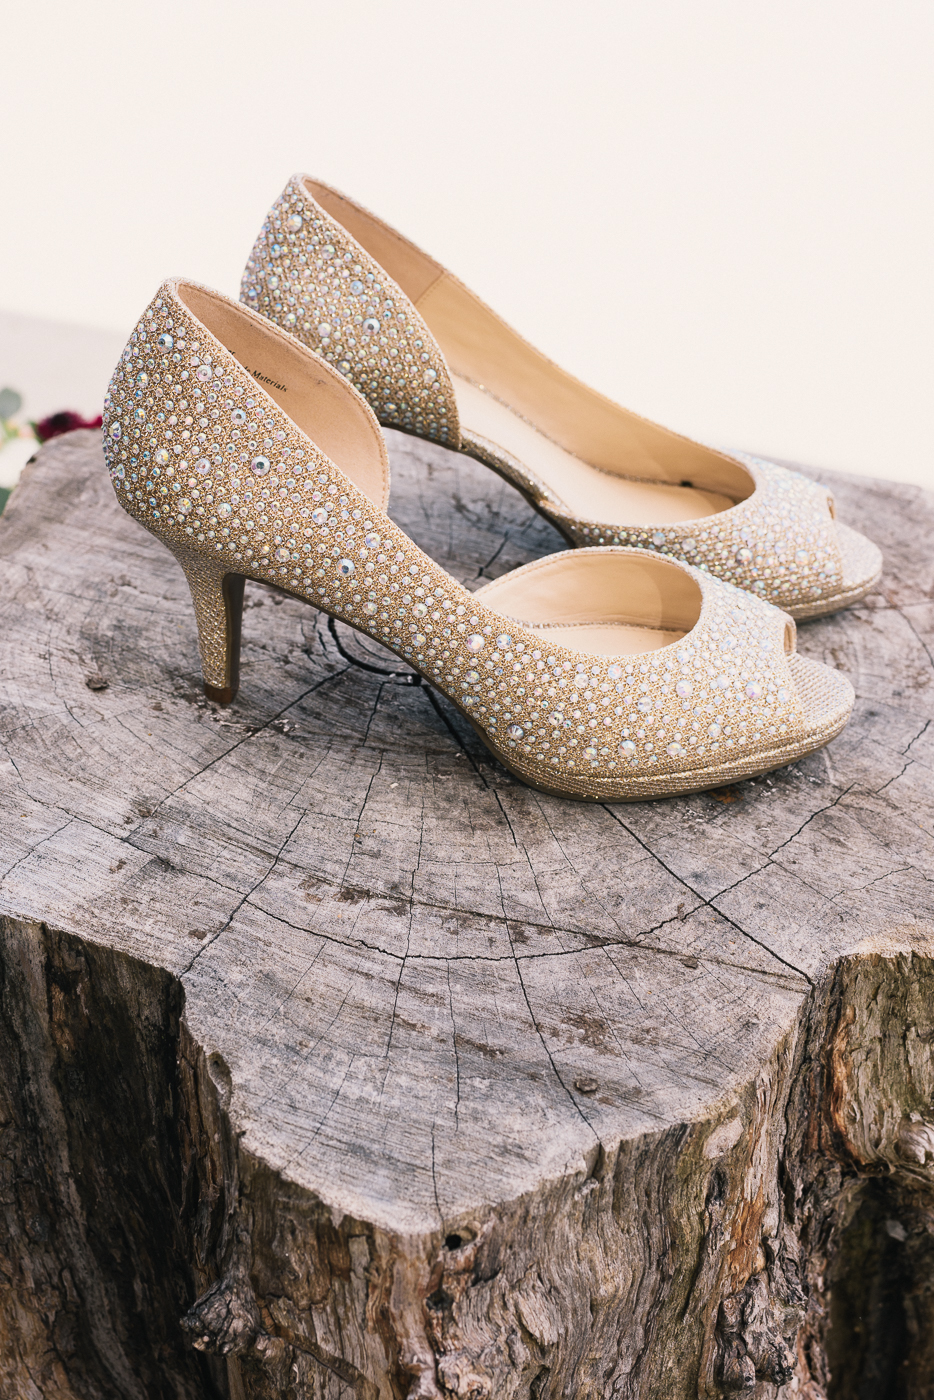 Wedding Shoes stump open toes off white tan studded wedding peep toe heels